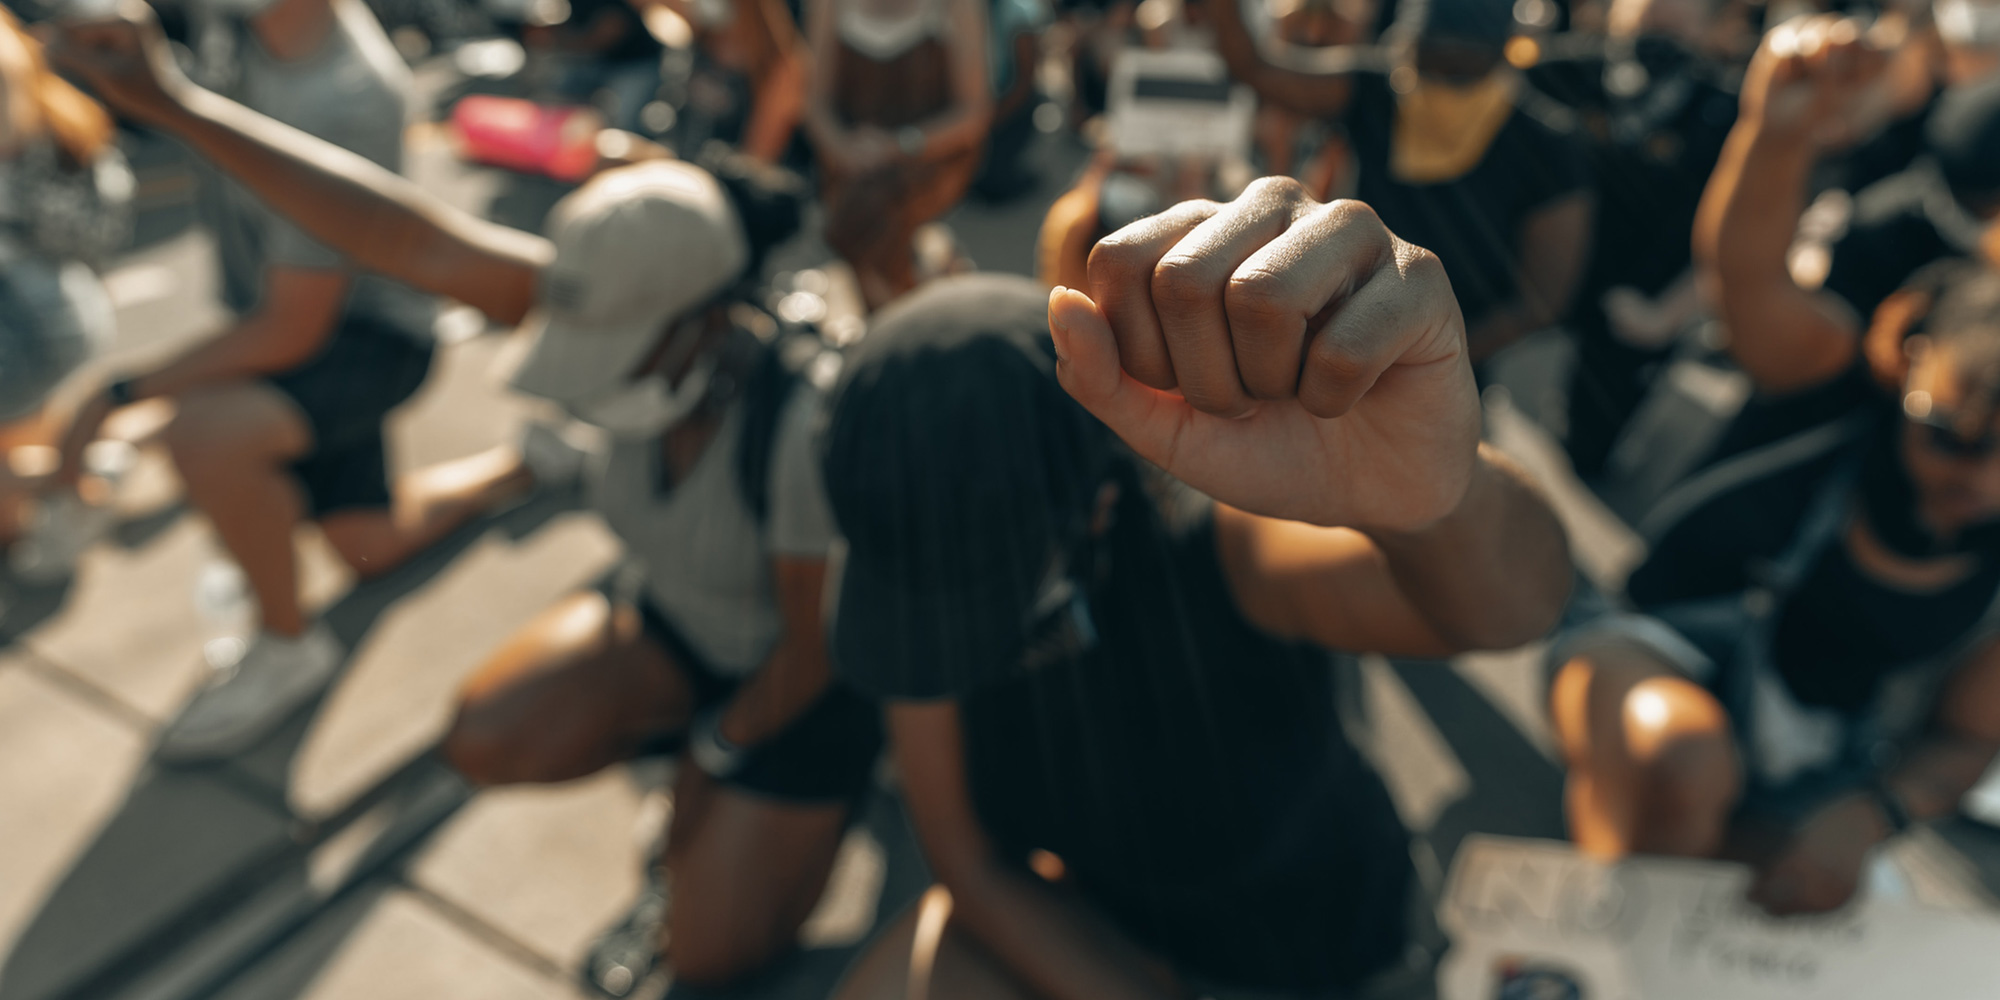 group with fists up in solidarity